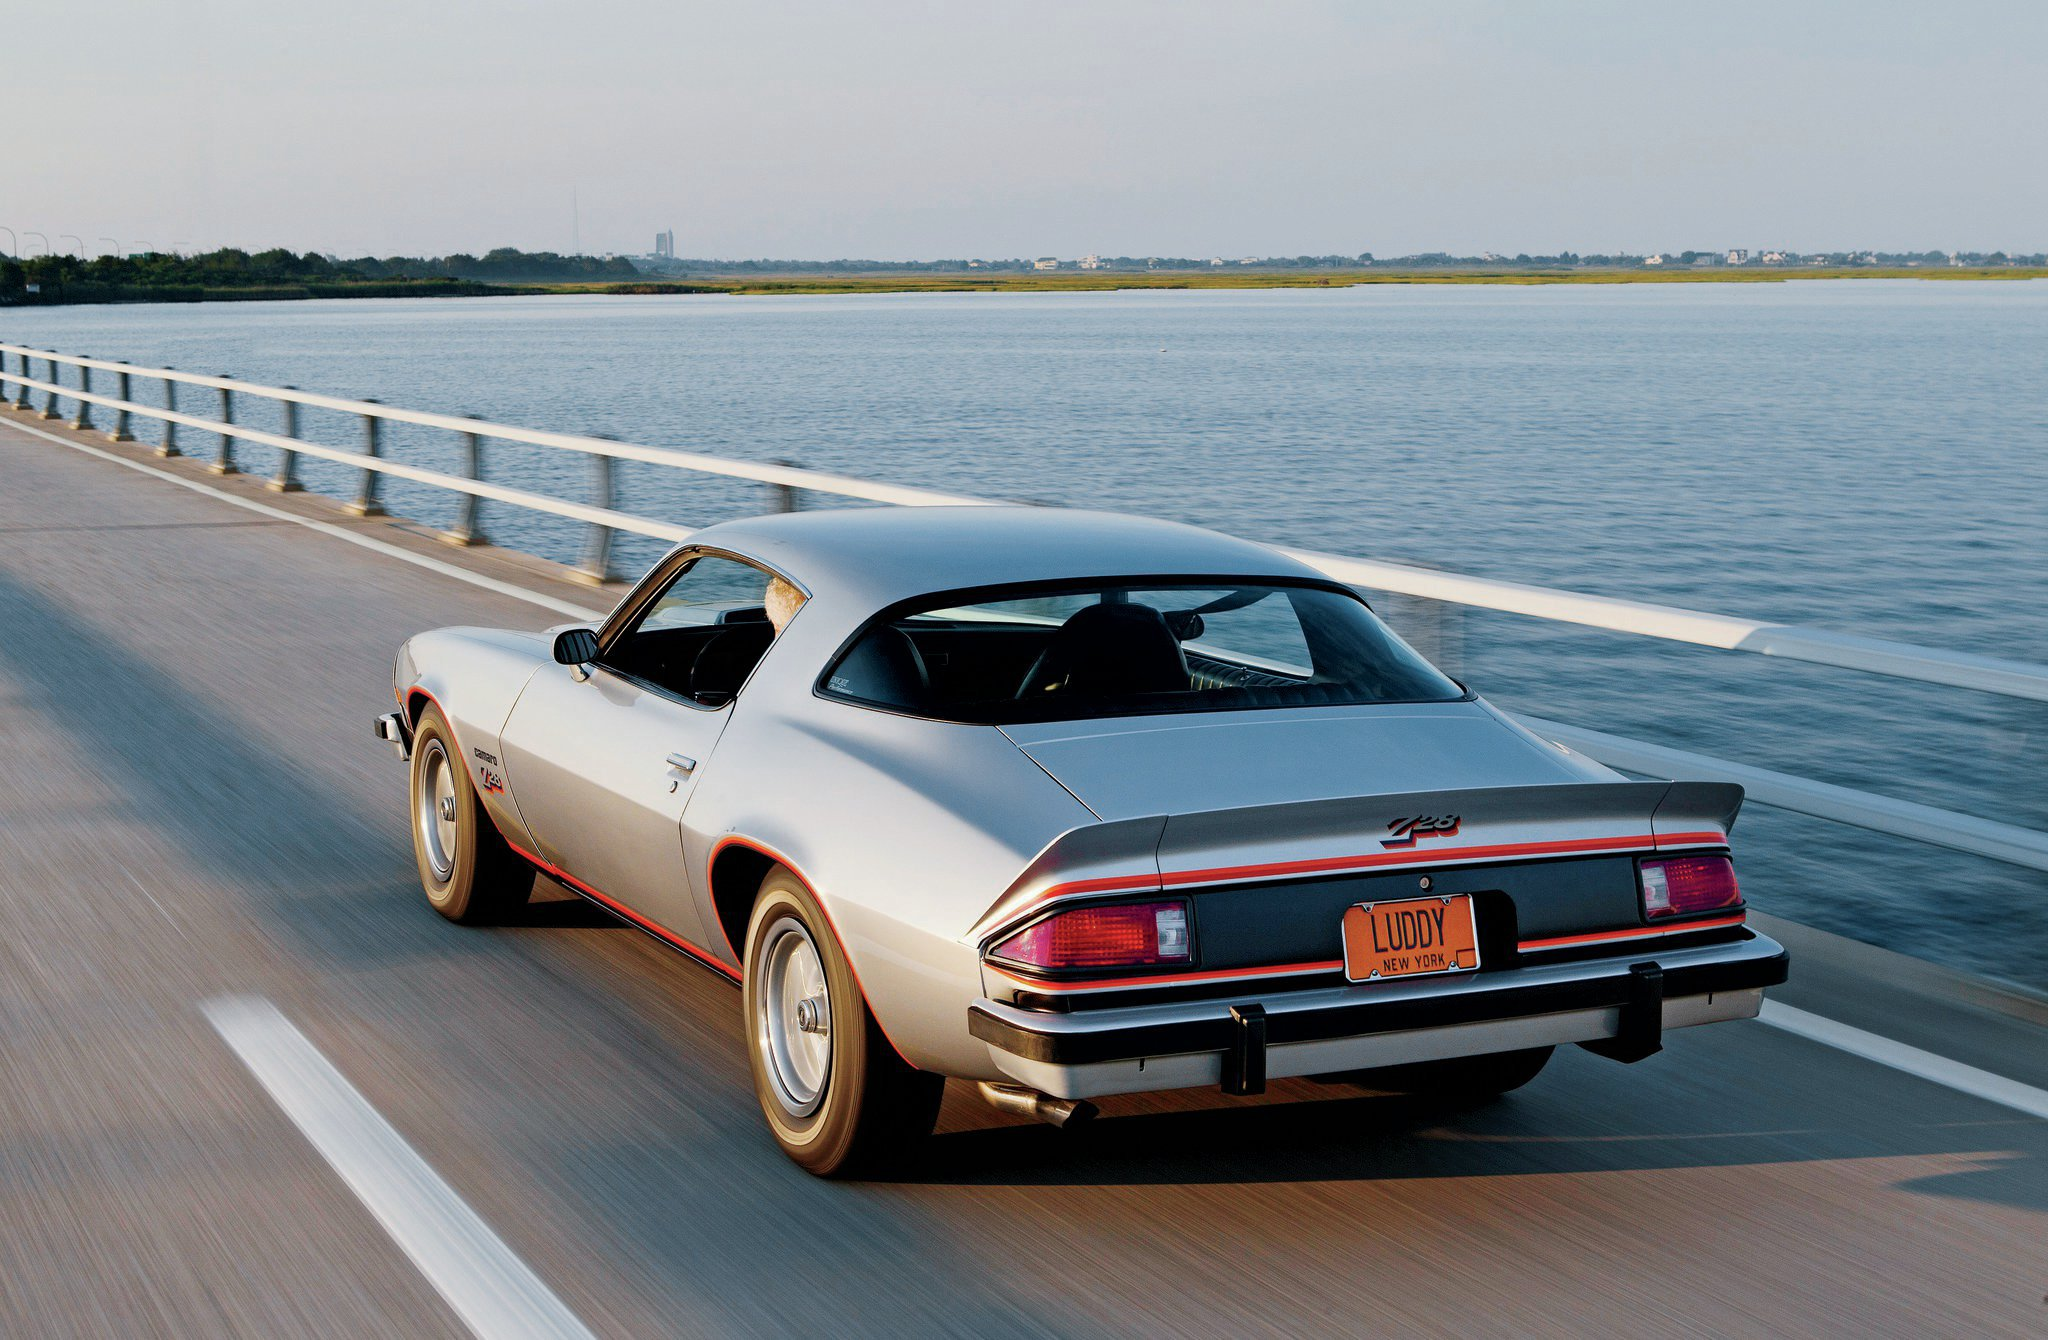 Louise's Z28 is one of 17 performance and muscle cars she and her husband Henry own. Most were bought new. Louise bought hers to be her daily driver in the years before she and Henry were married.